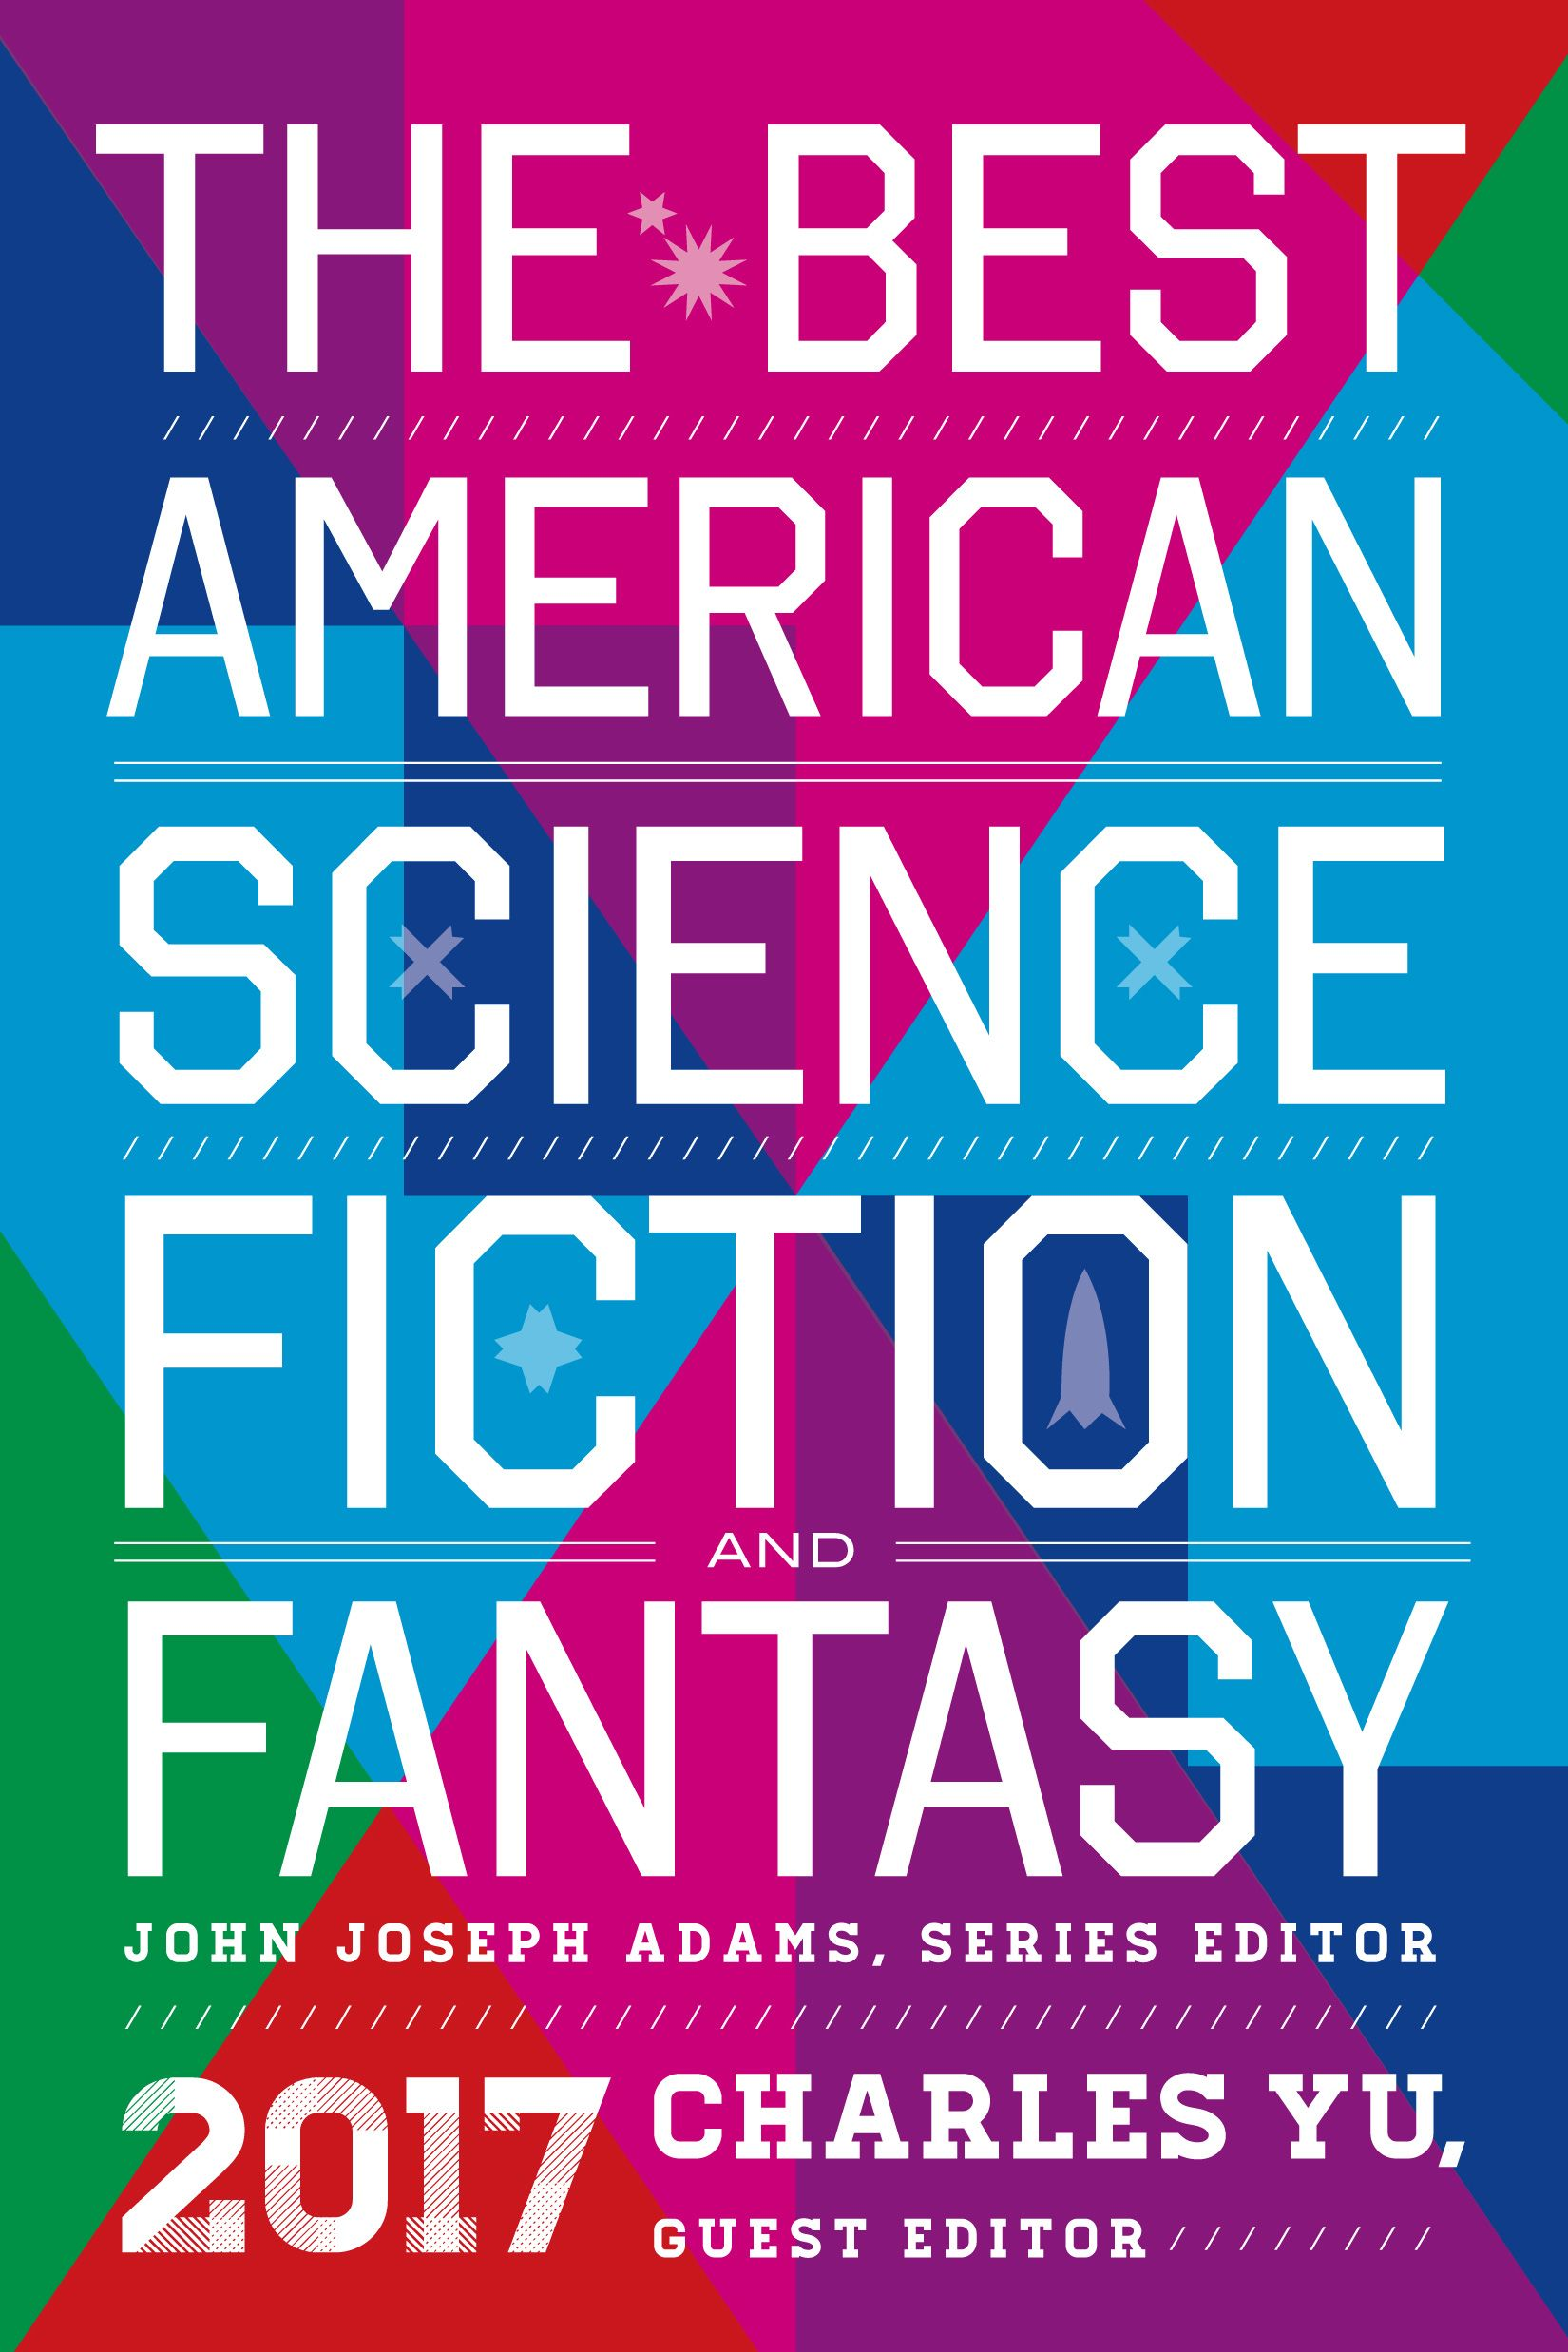 The Table Of Contents For Best American Science Fiction